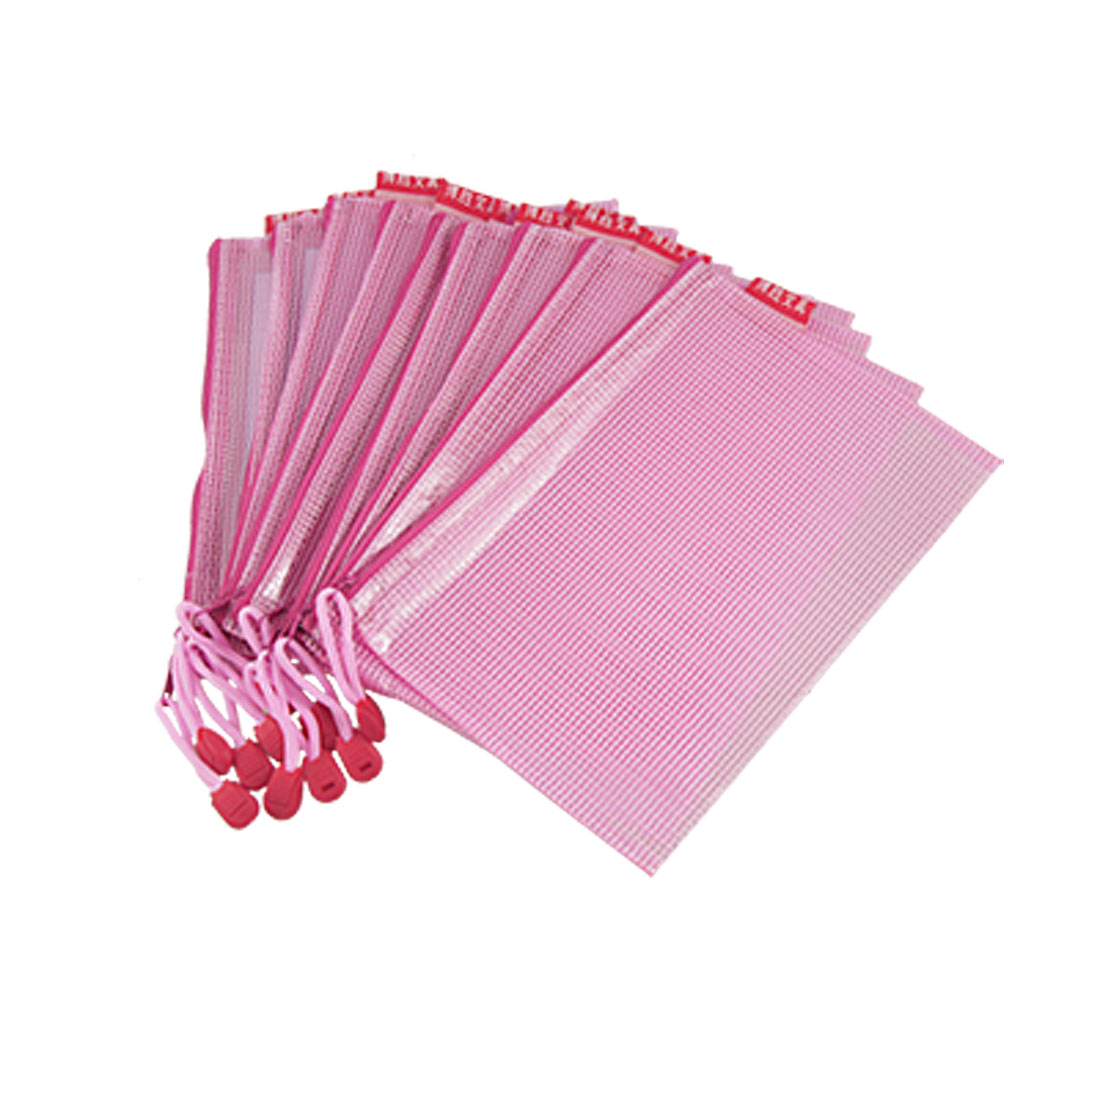 10 Pcs Netting Detail Pink A5 Document File Holder Zipper Bags w Strap